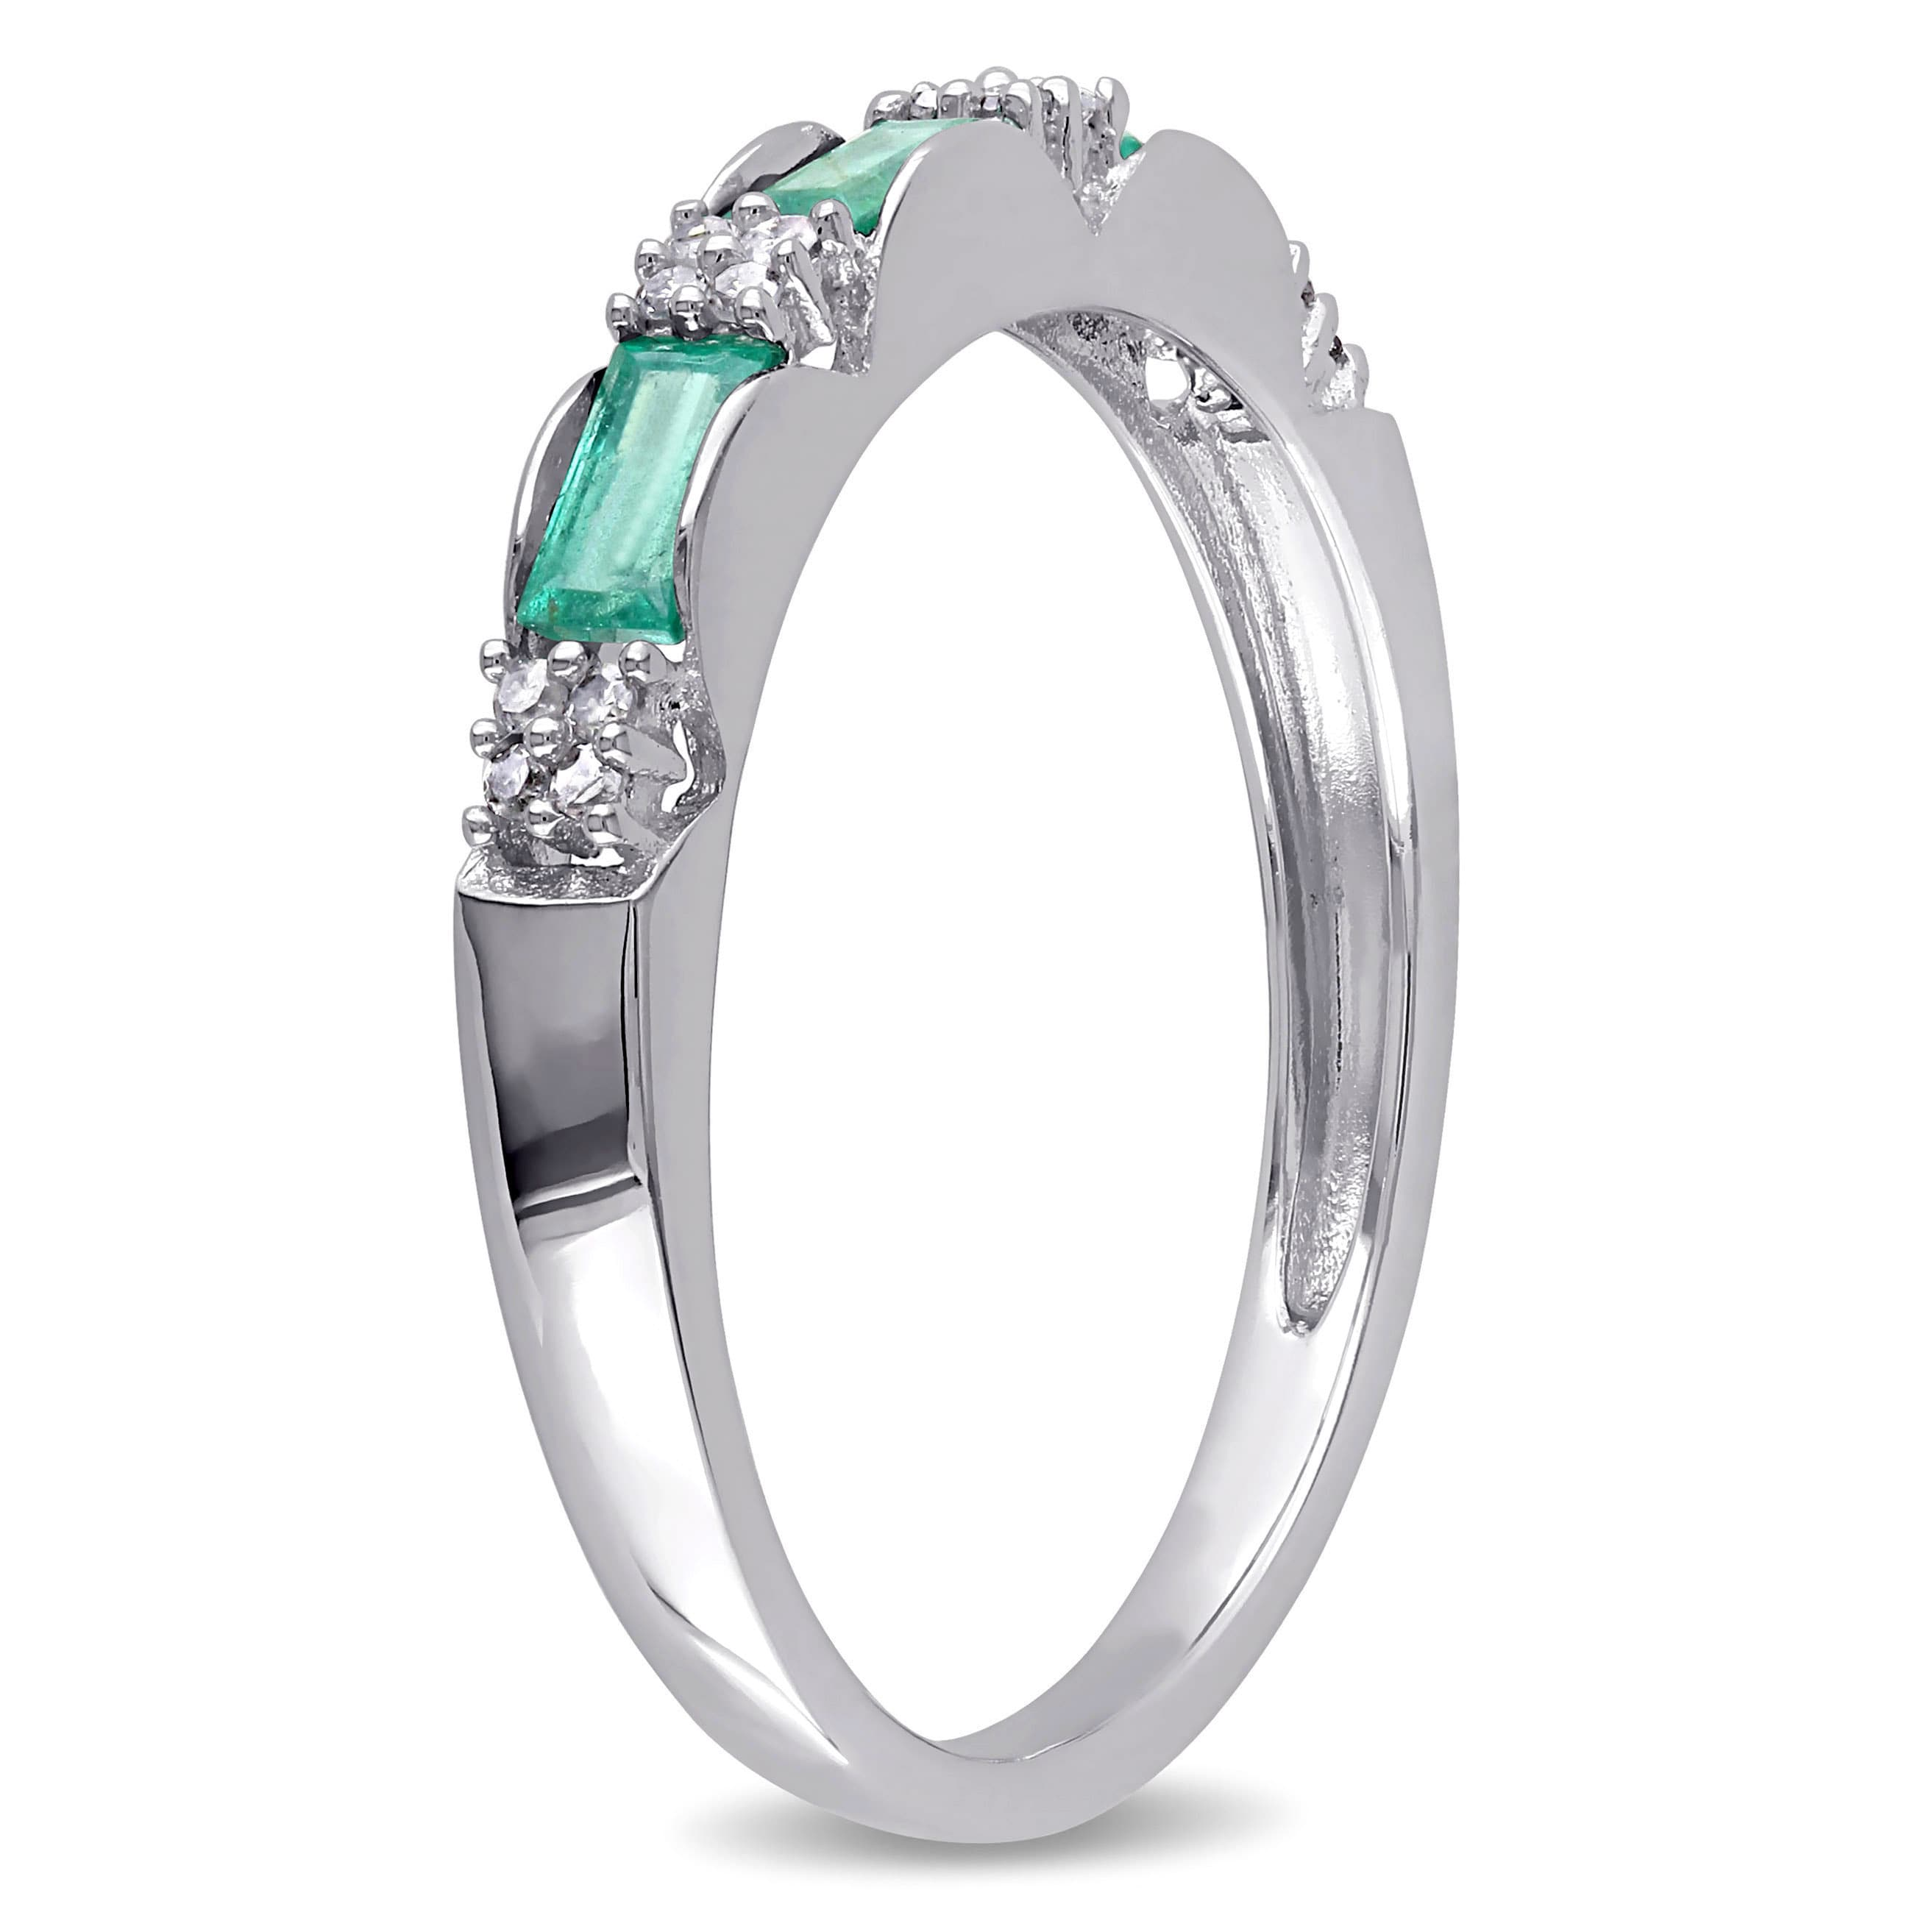 set ring shoulders with emerald eternity product trinity solitaire bands band diamond cut